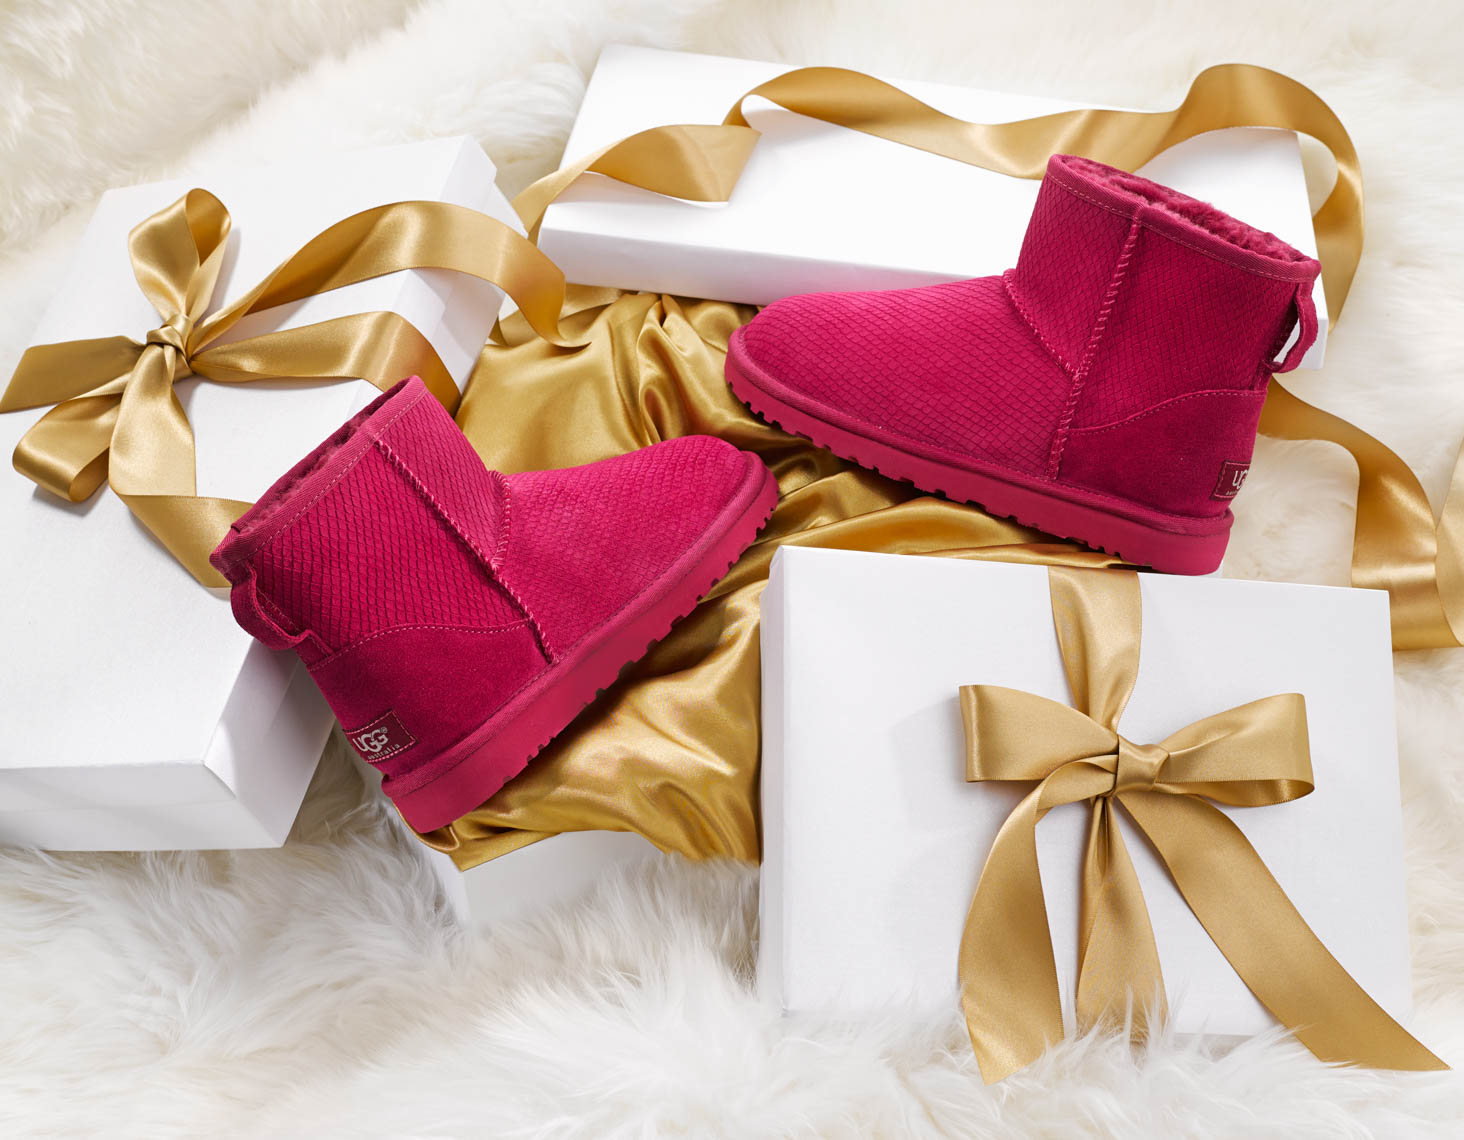 Apparel Still Life, Ugg Boots and Gift Boxes